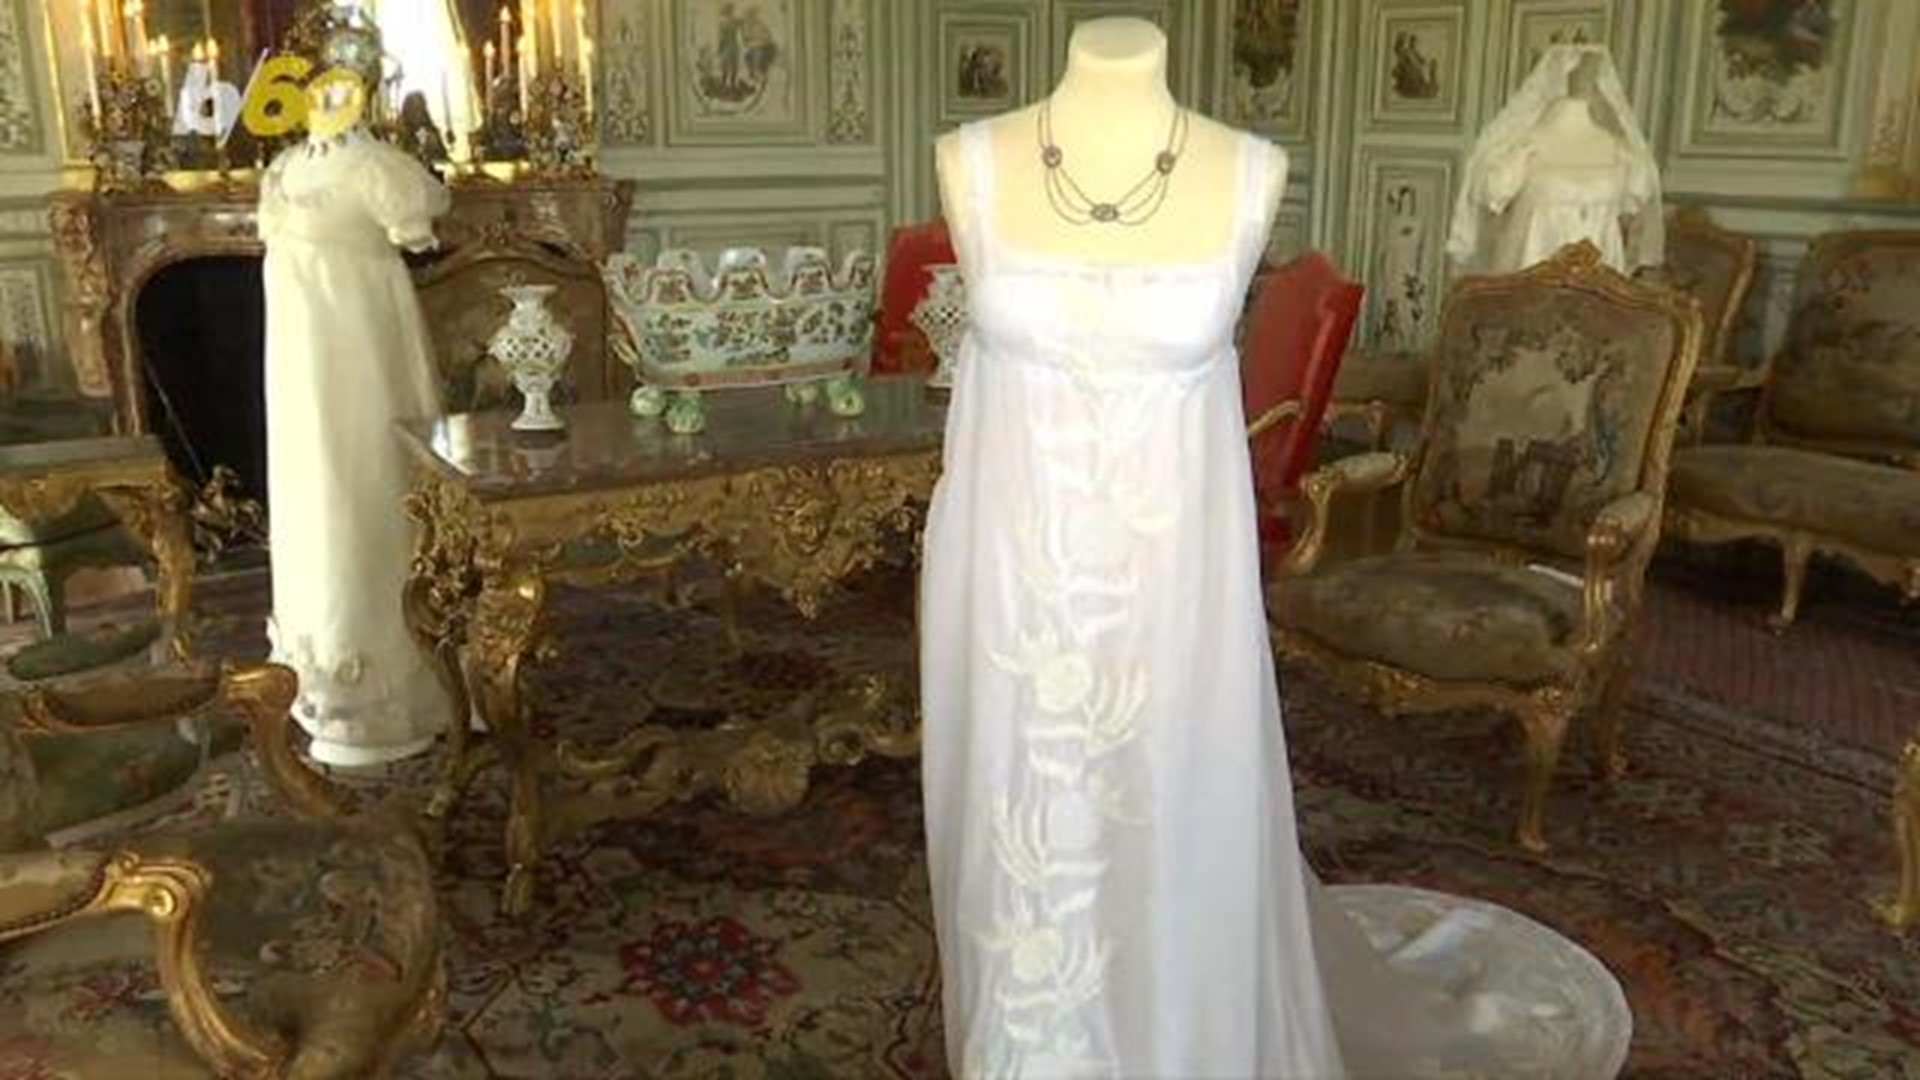 meghan markle s wedding dress will she wear ralph russo or erdem or shock us completely king5 com king5 com